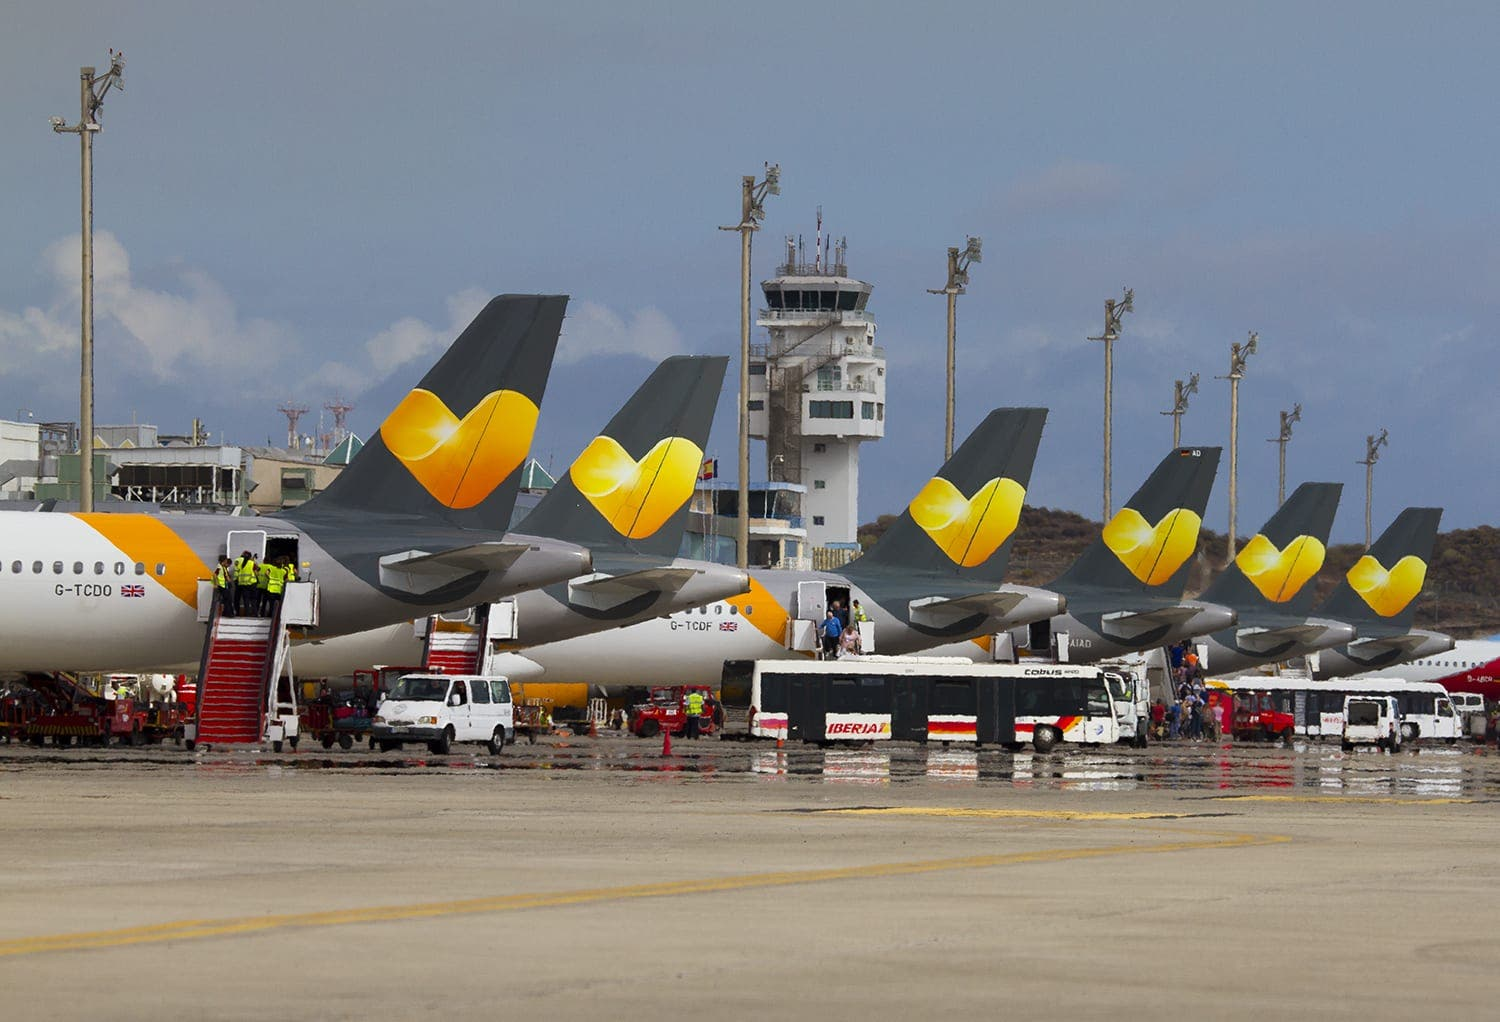 Thomas Cook Airlines Aircraft